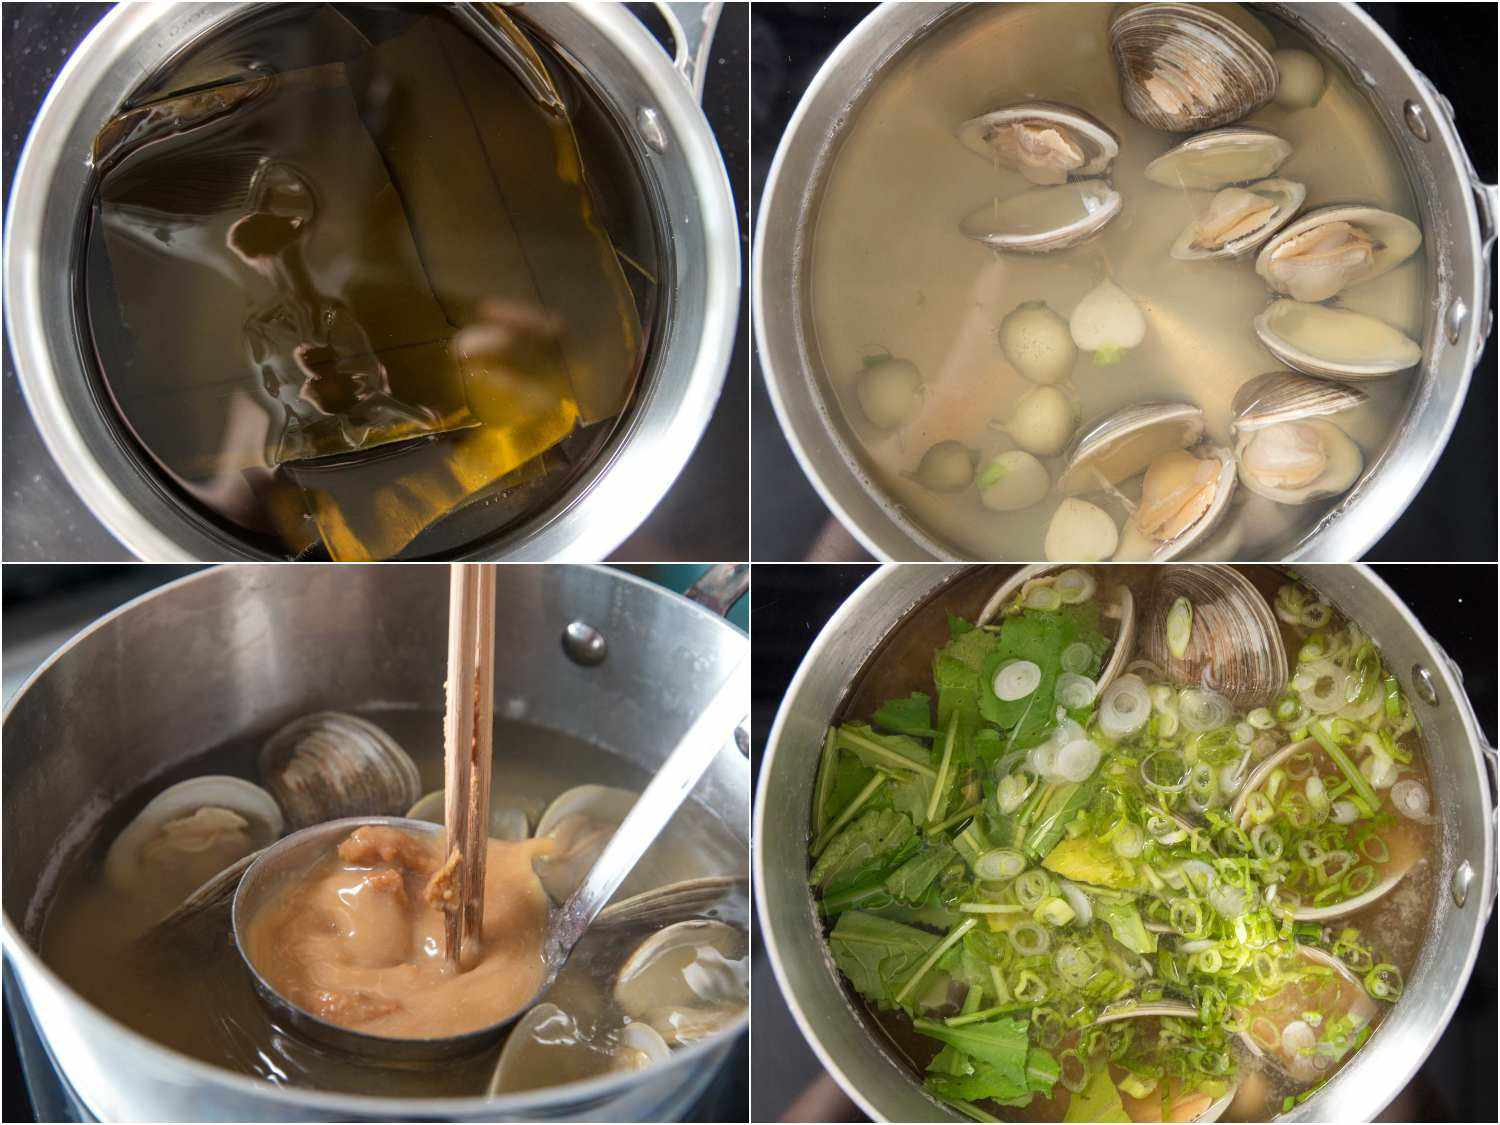 Stages of making miso soup with clams: soaking kombu in water, adding clams and halved turnips to dashi, mixing miso into dashi, adding scallions and greens